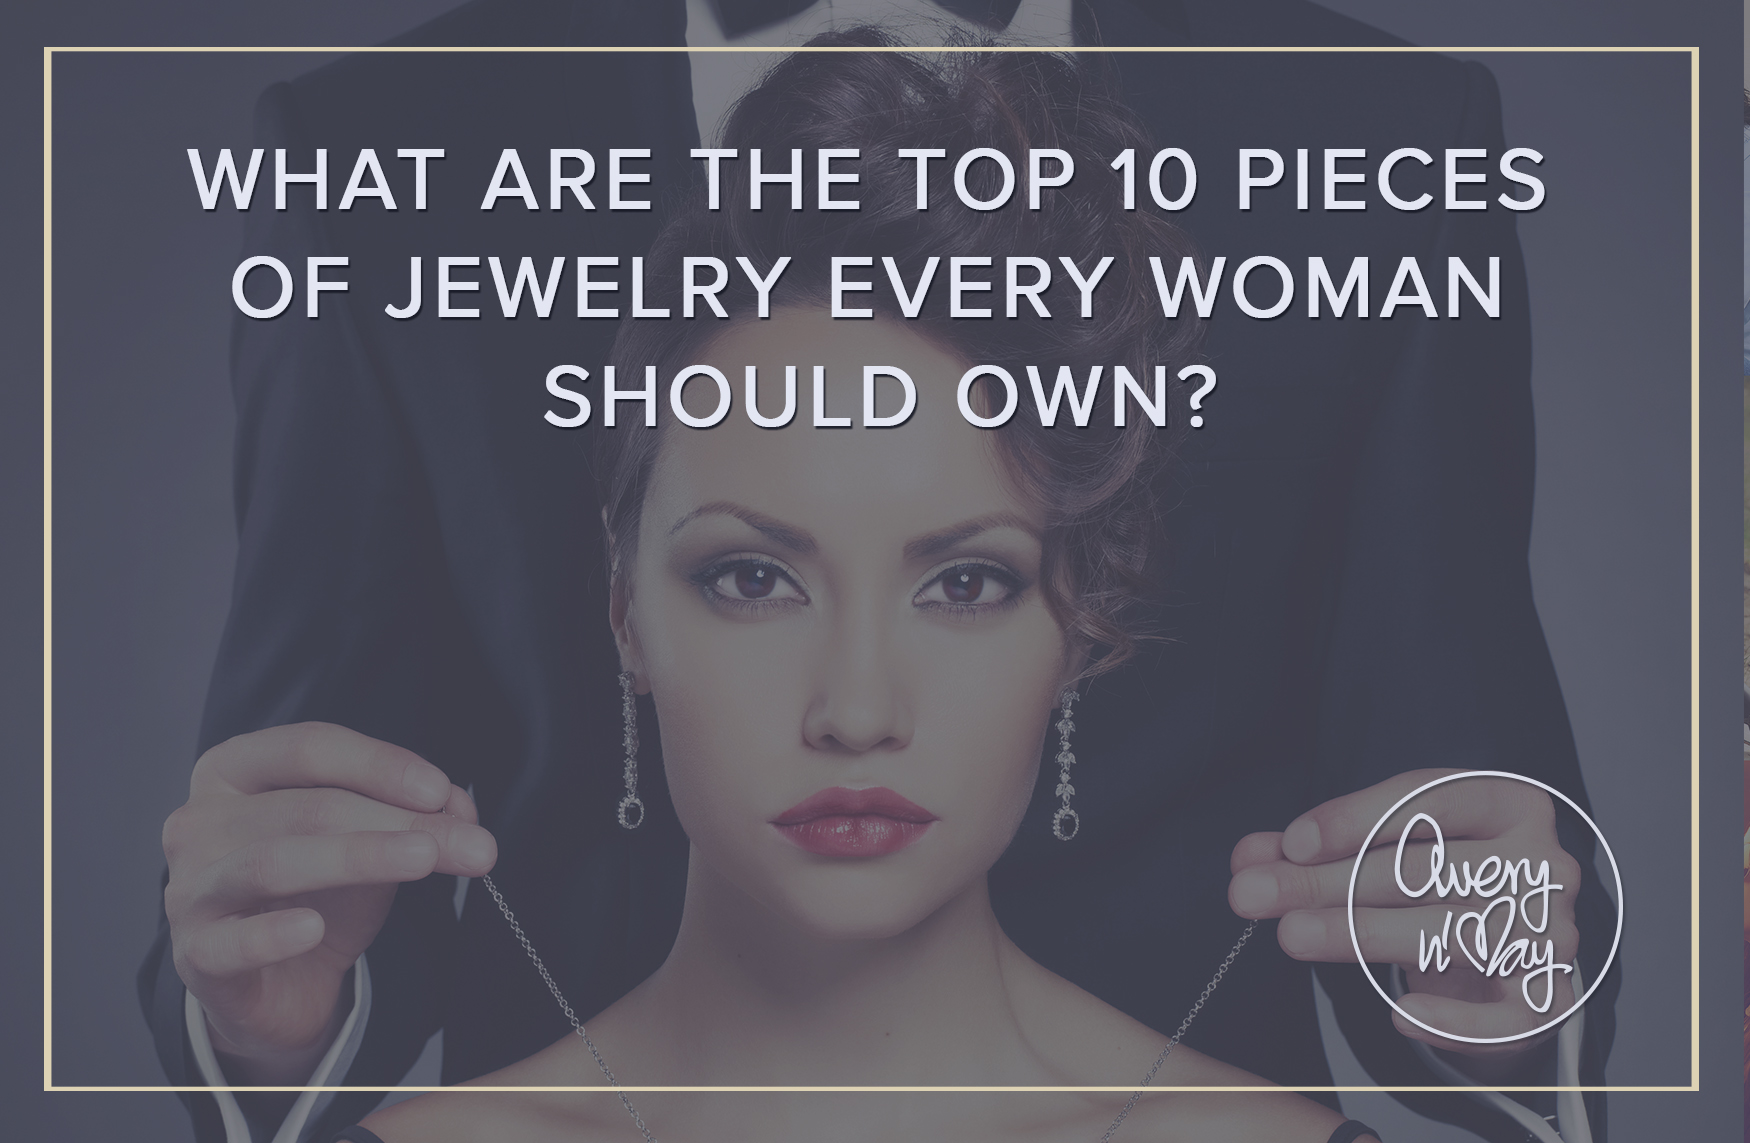 What are the top 10 pieces of Jewelry every woman should own?